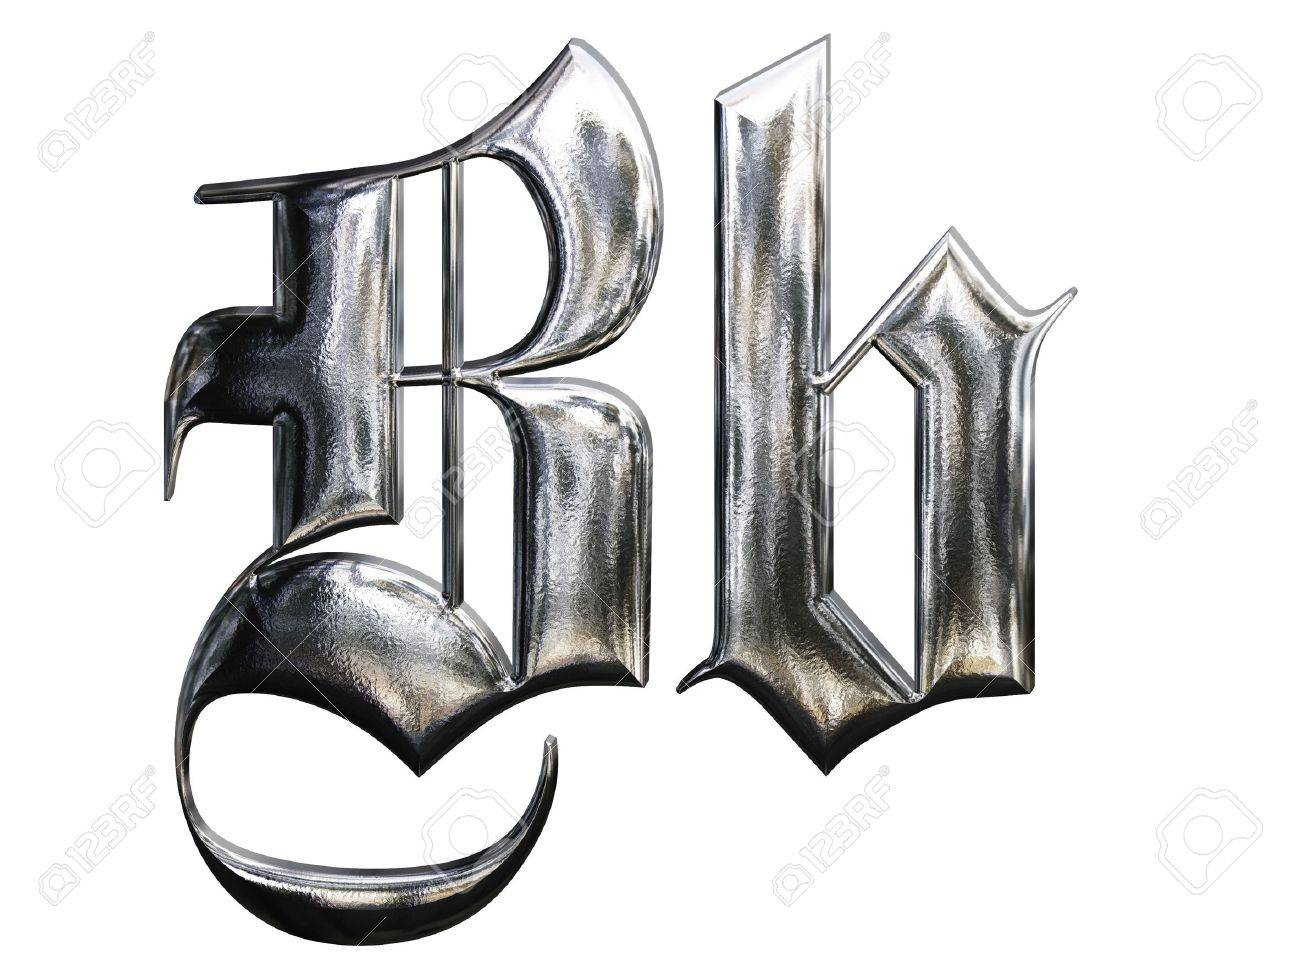 Metallic Patterned Letter Of German Gothic Alphabet Font. Letter